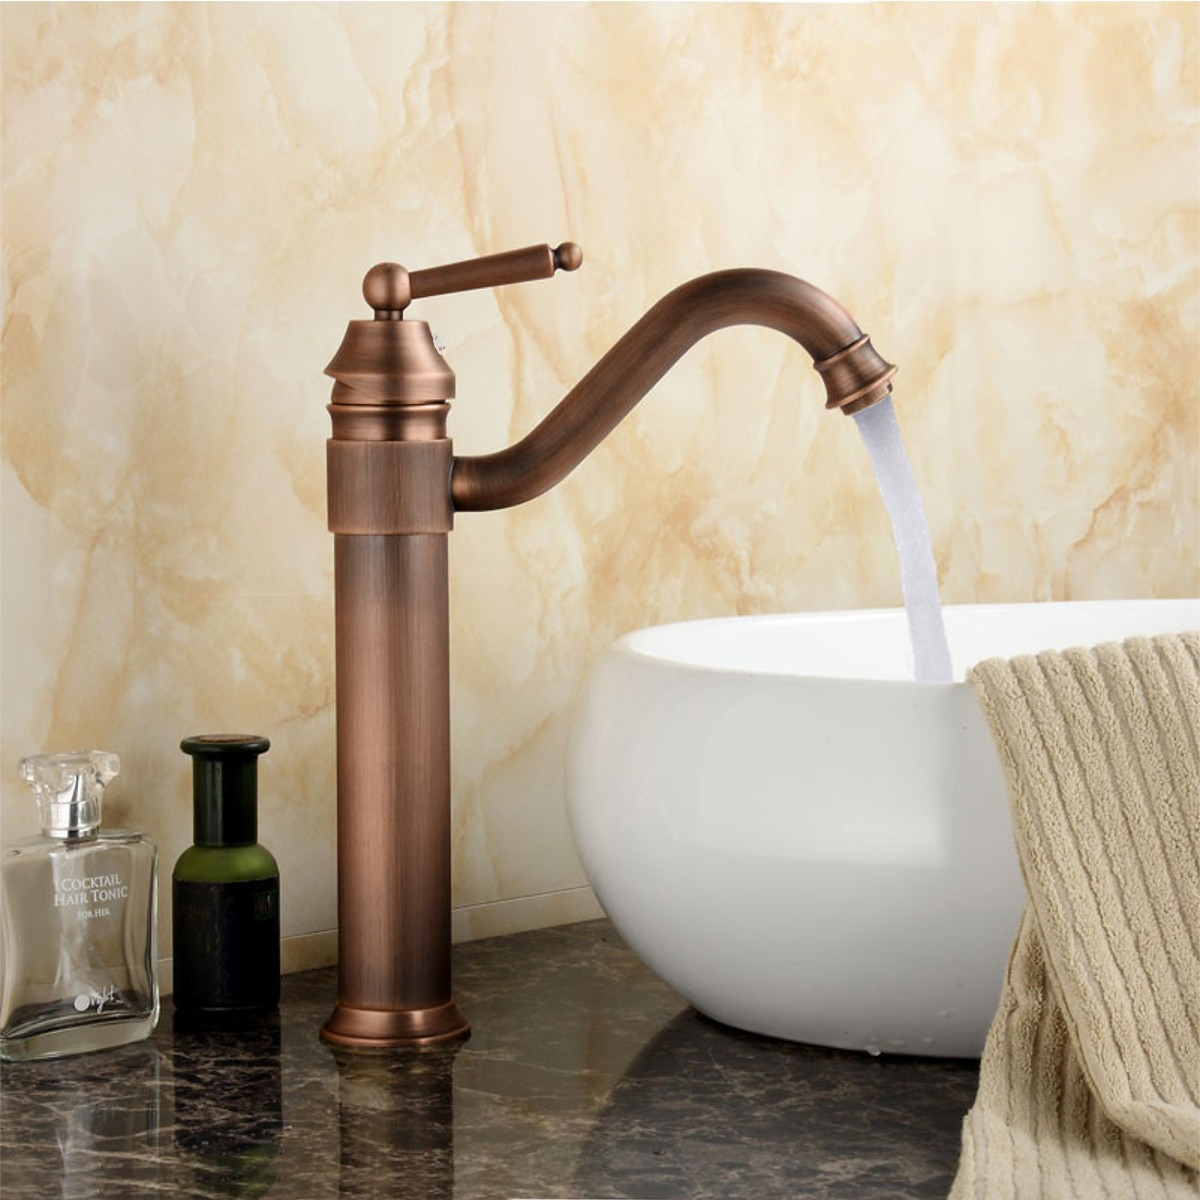 Europe Classic Style Bathroom Basin Faucet Antique Copper Finish Mixer Tap with Ceramic Mixer Tap Sink FaucetEurope Classic Style Bathroom Basin Faucet Antique Copper Finish Mixer Tap with Ceramic Mixer Tap Sink Faucet